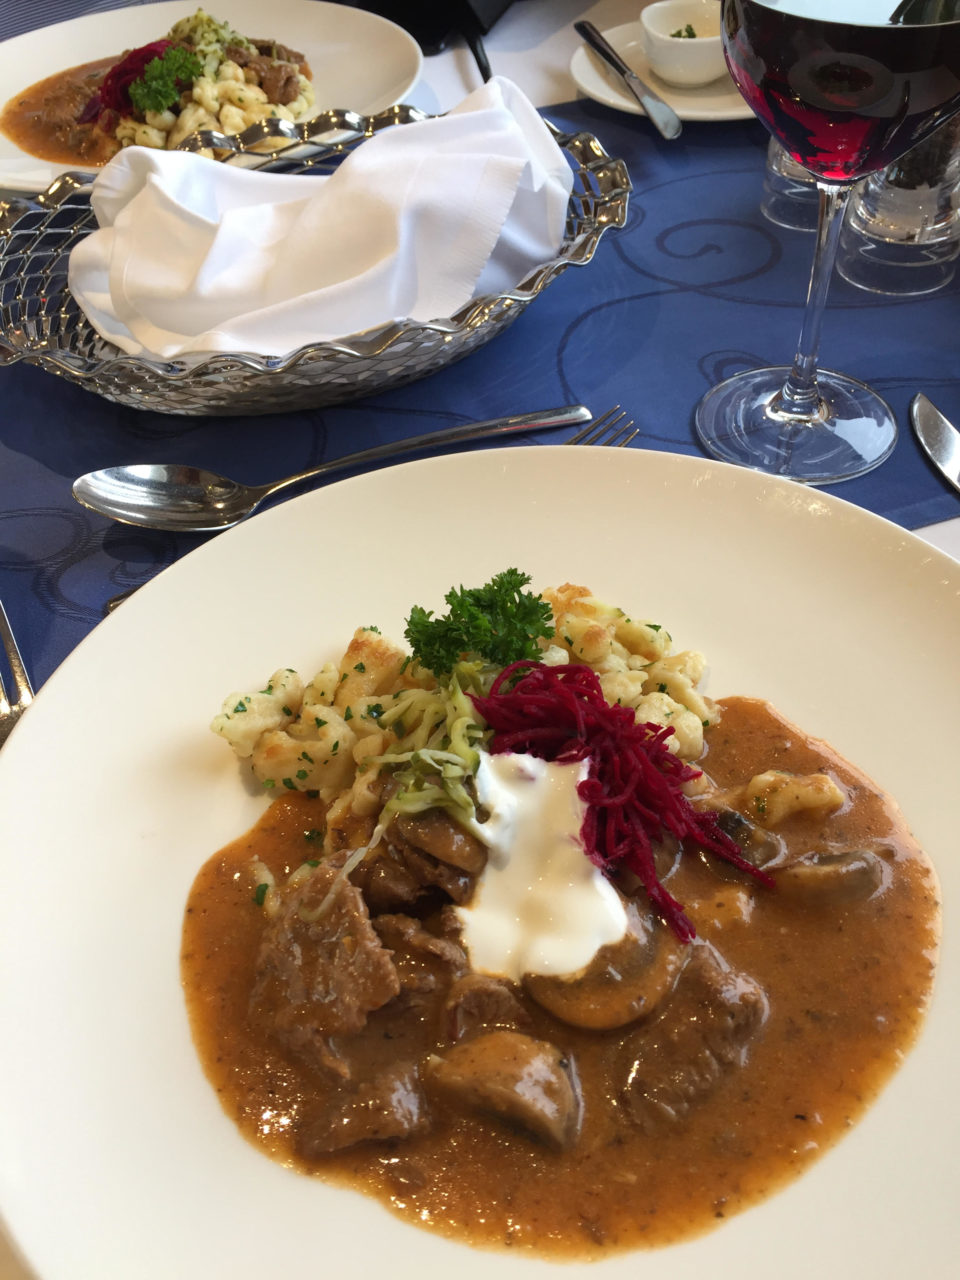 Beef Stroganoff, one of the many Russian specialties served onboard the Viking Akun river cruise ship in Russia